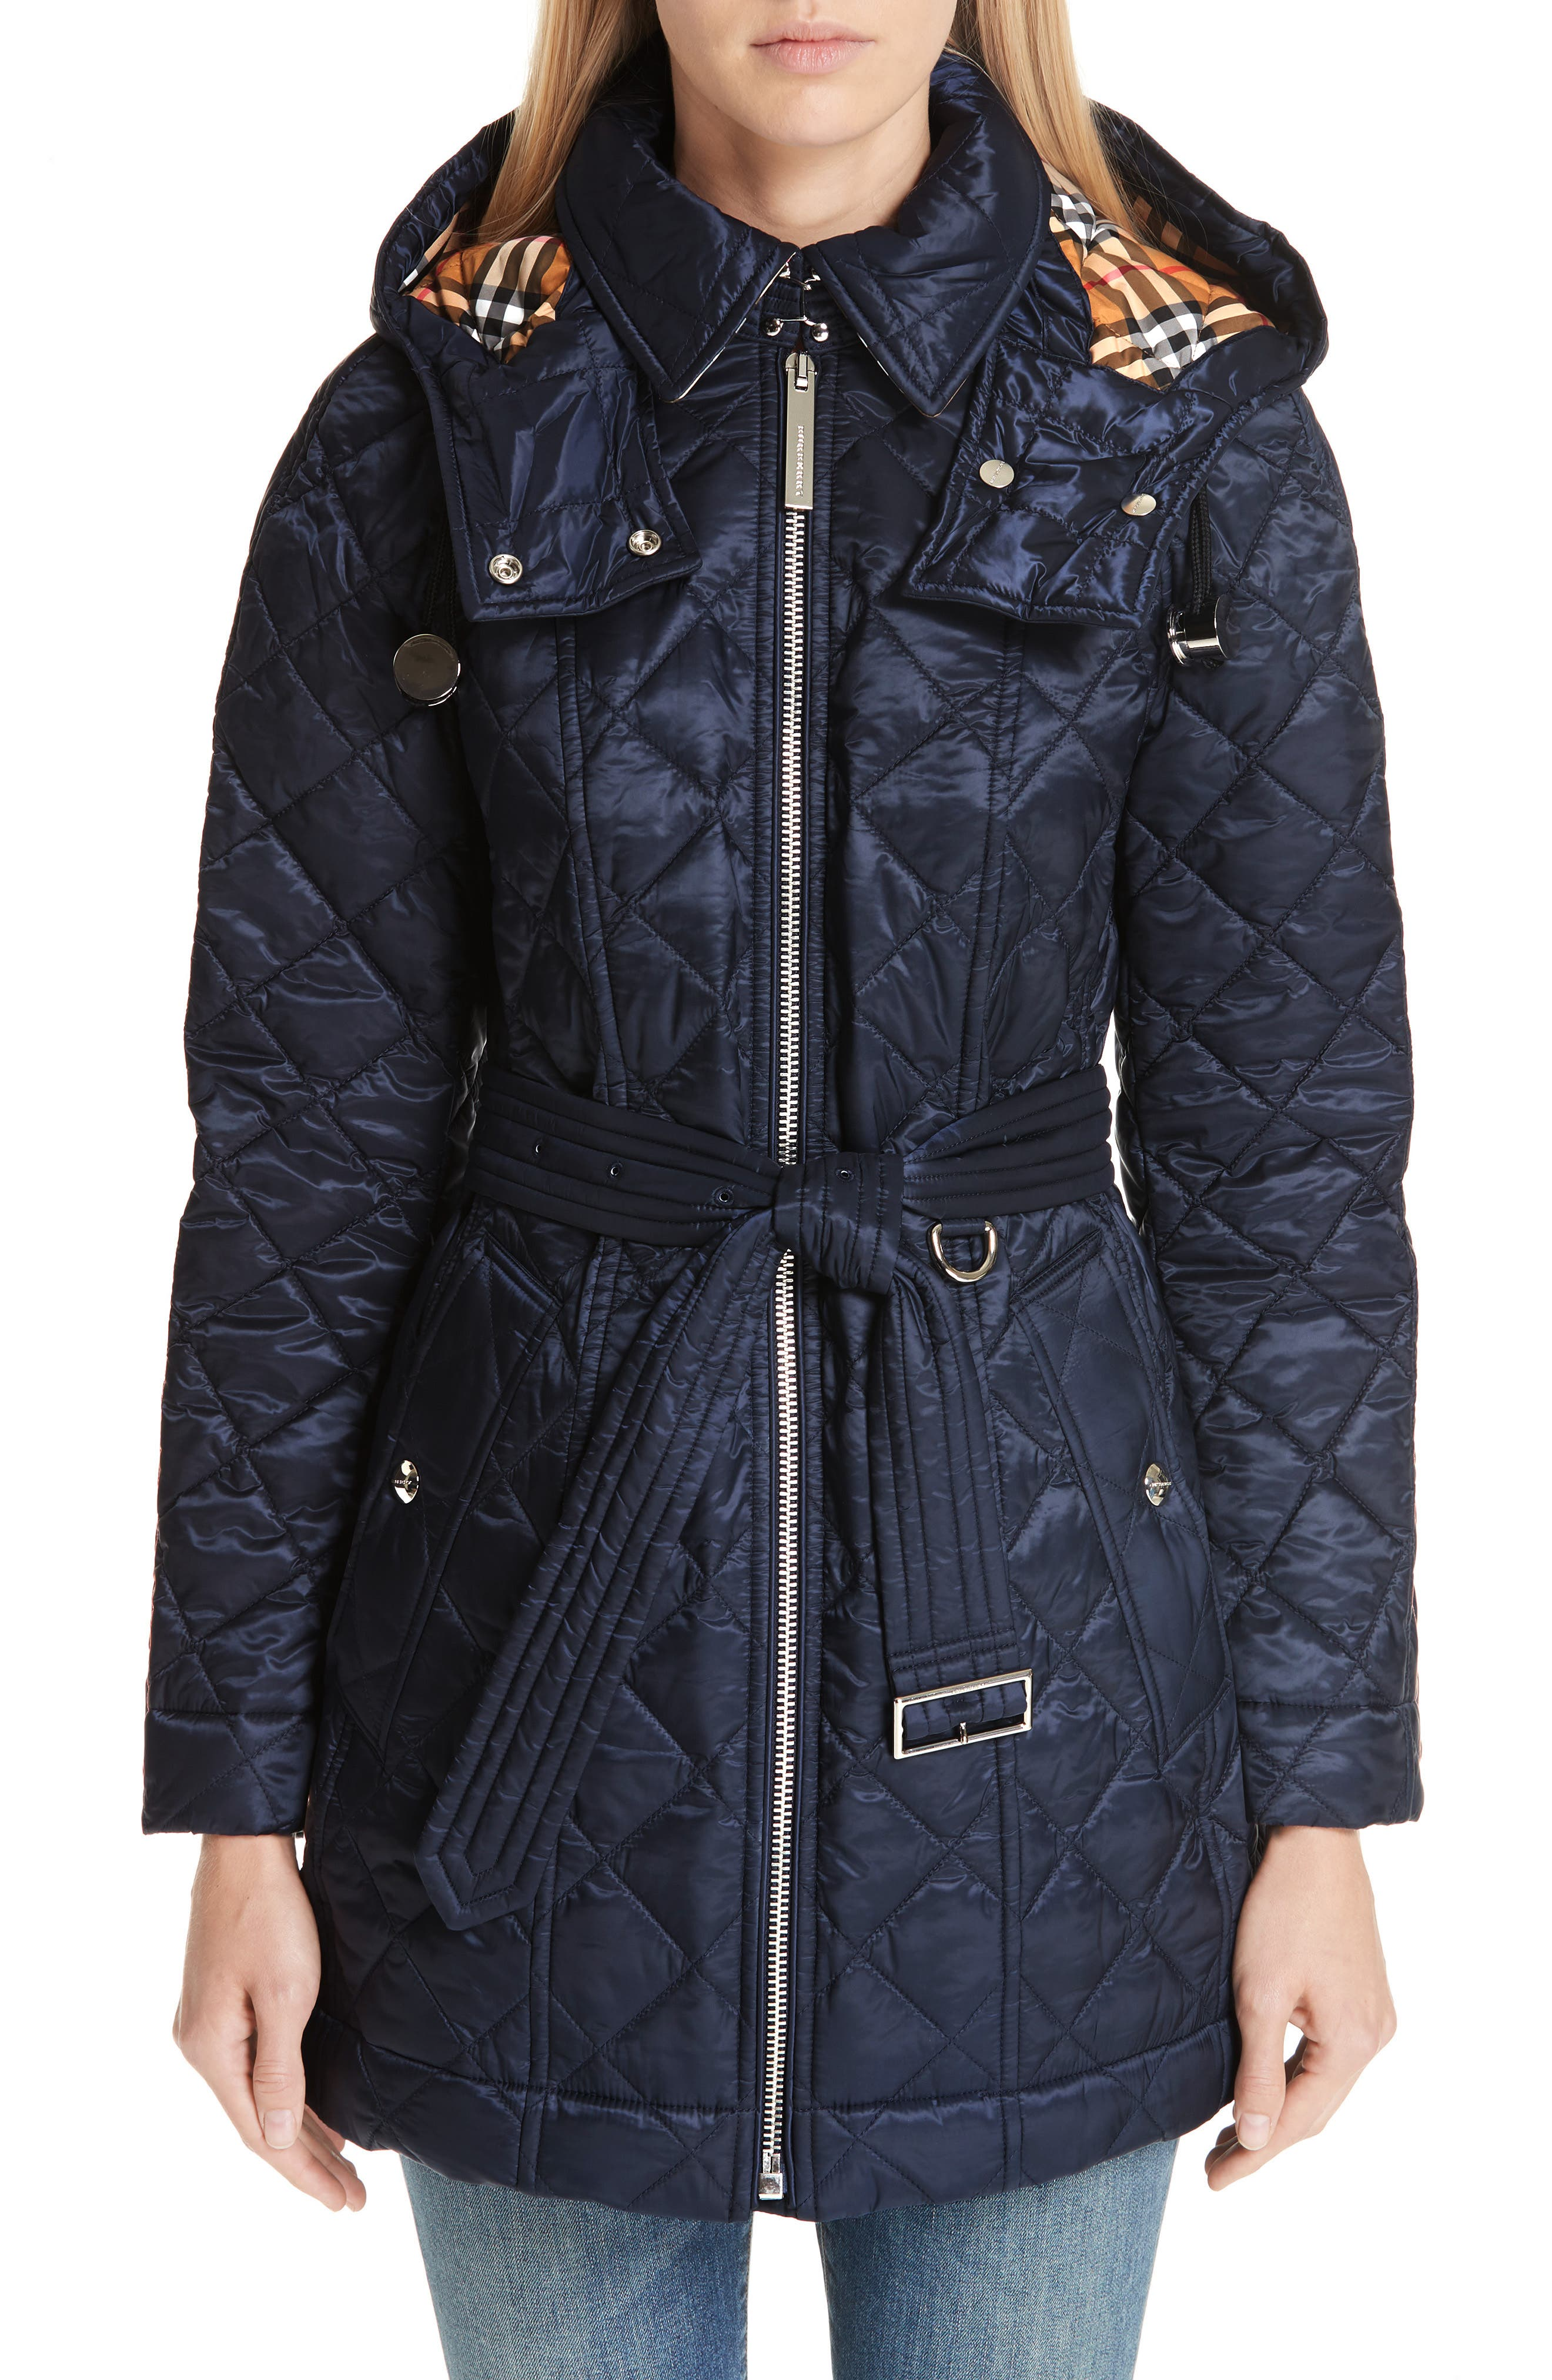 Baughton 18 Quilted Coat,                             Main thumbnail 1, color,                             412